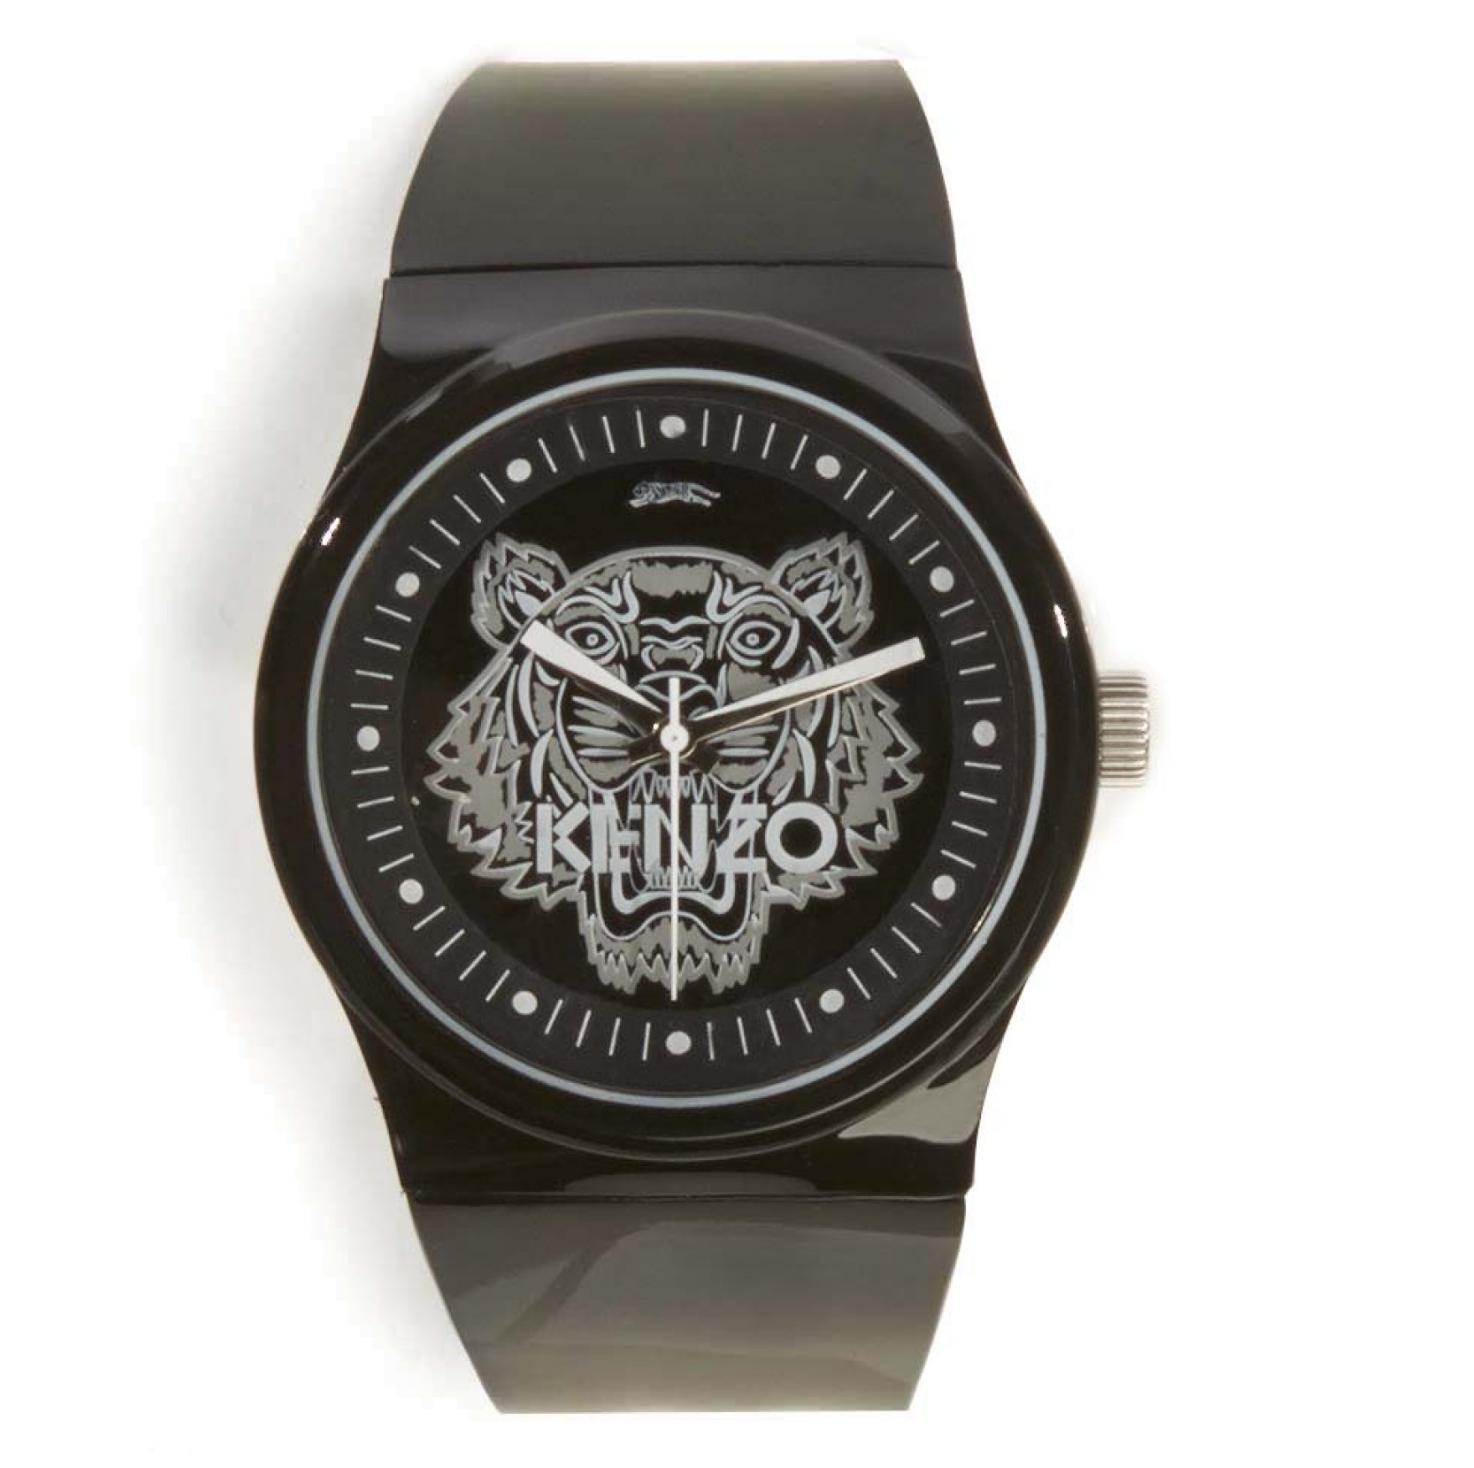 KENZO Tiger 3 Hand Tonal Watch On Sale @ Otte